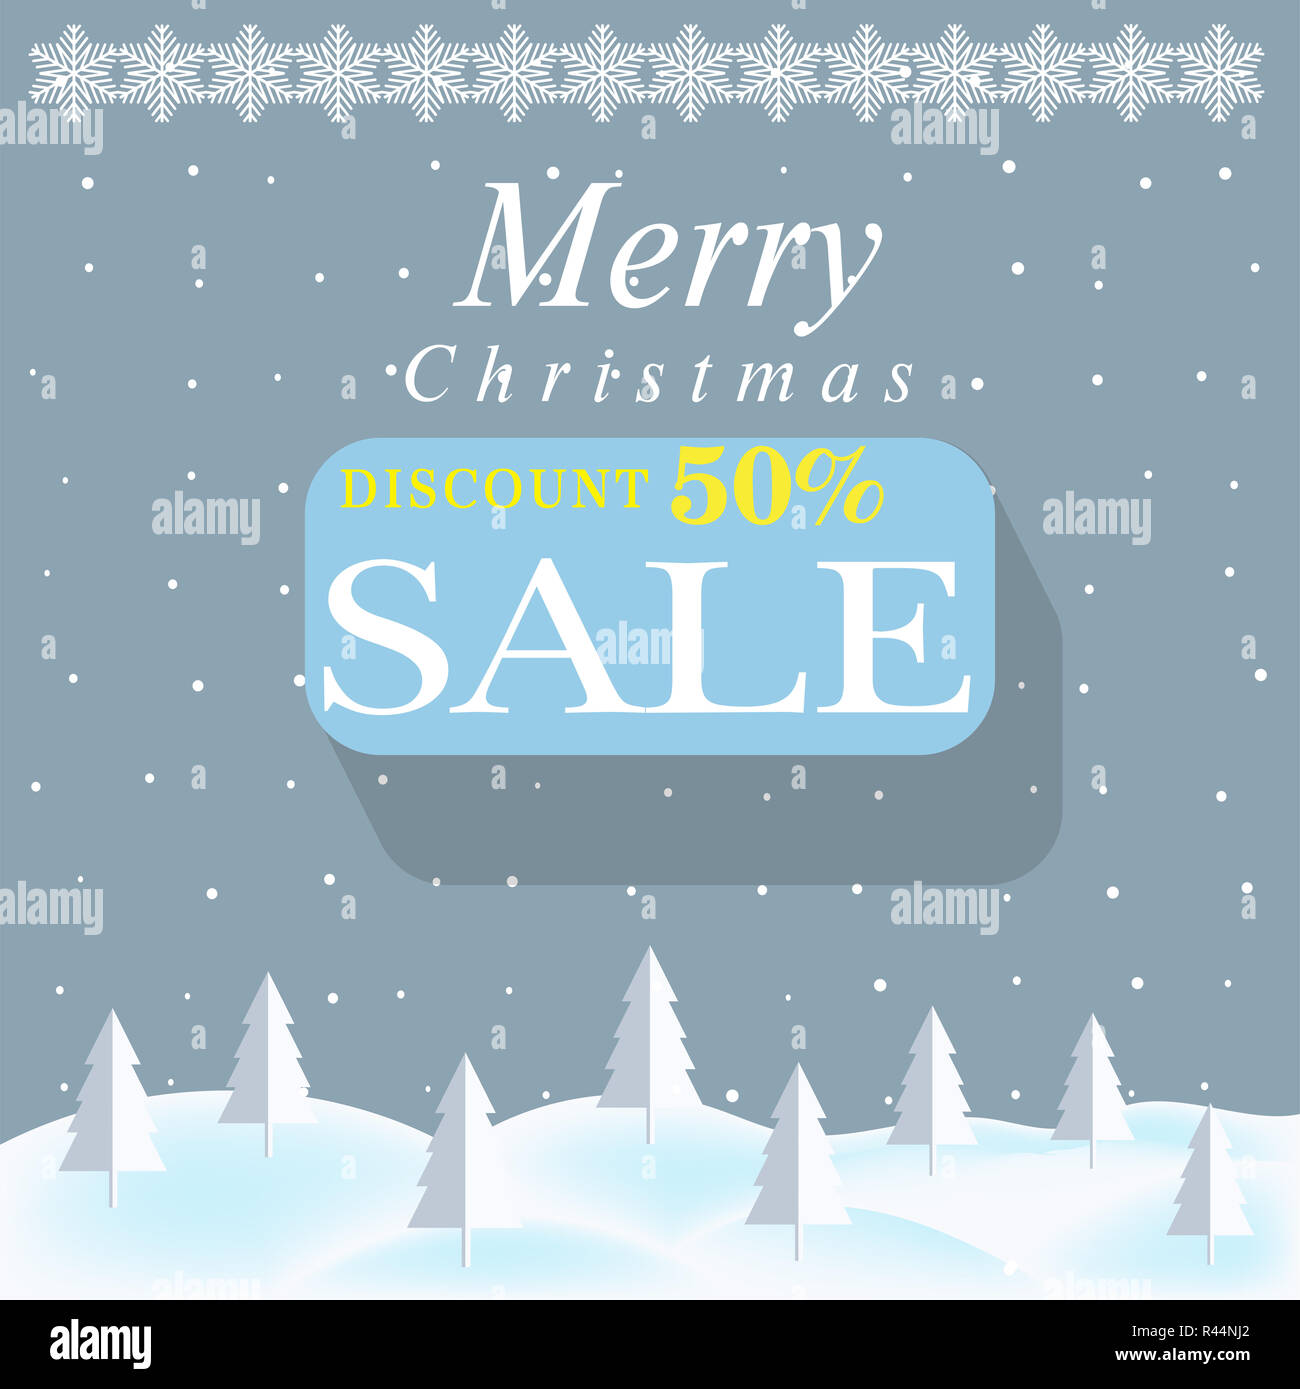 winter sale and discount poster design template or background